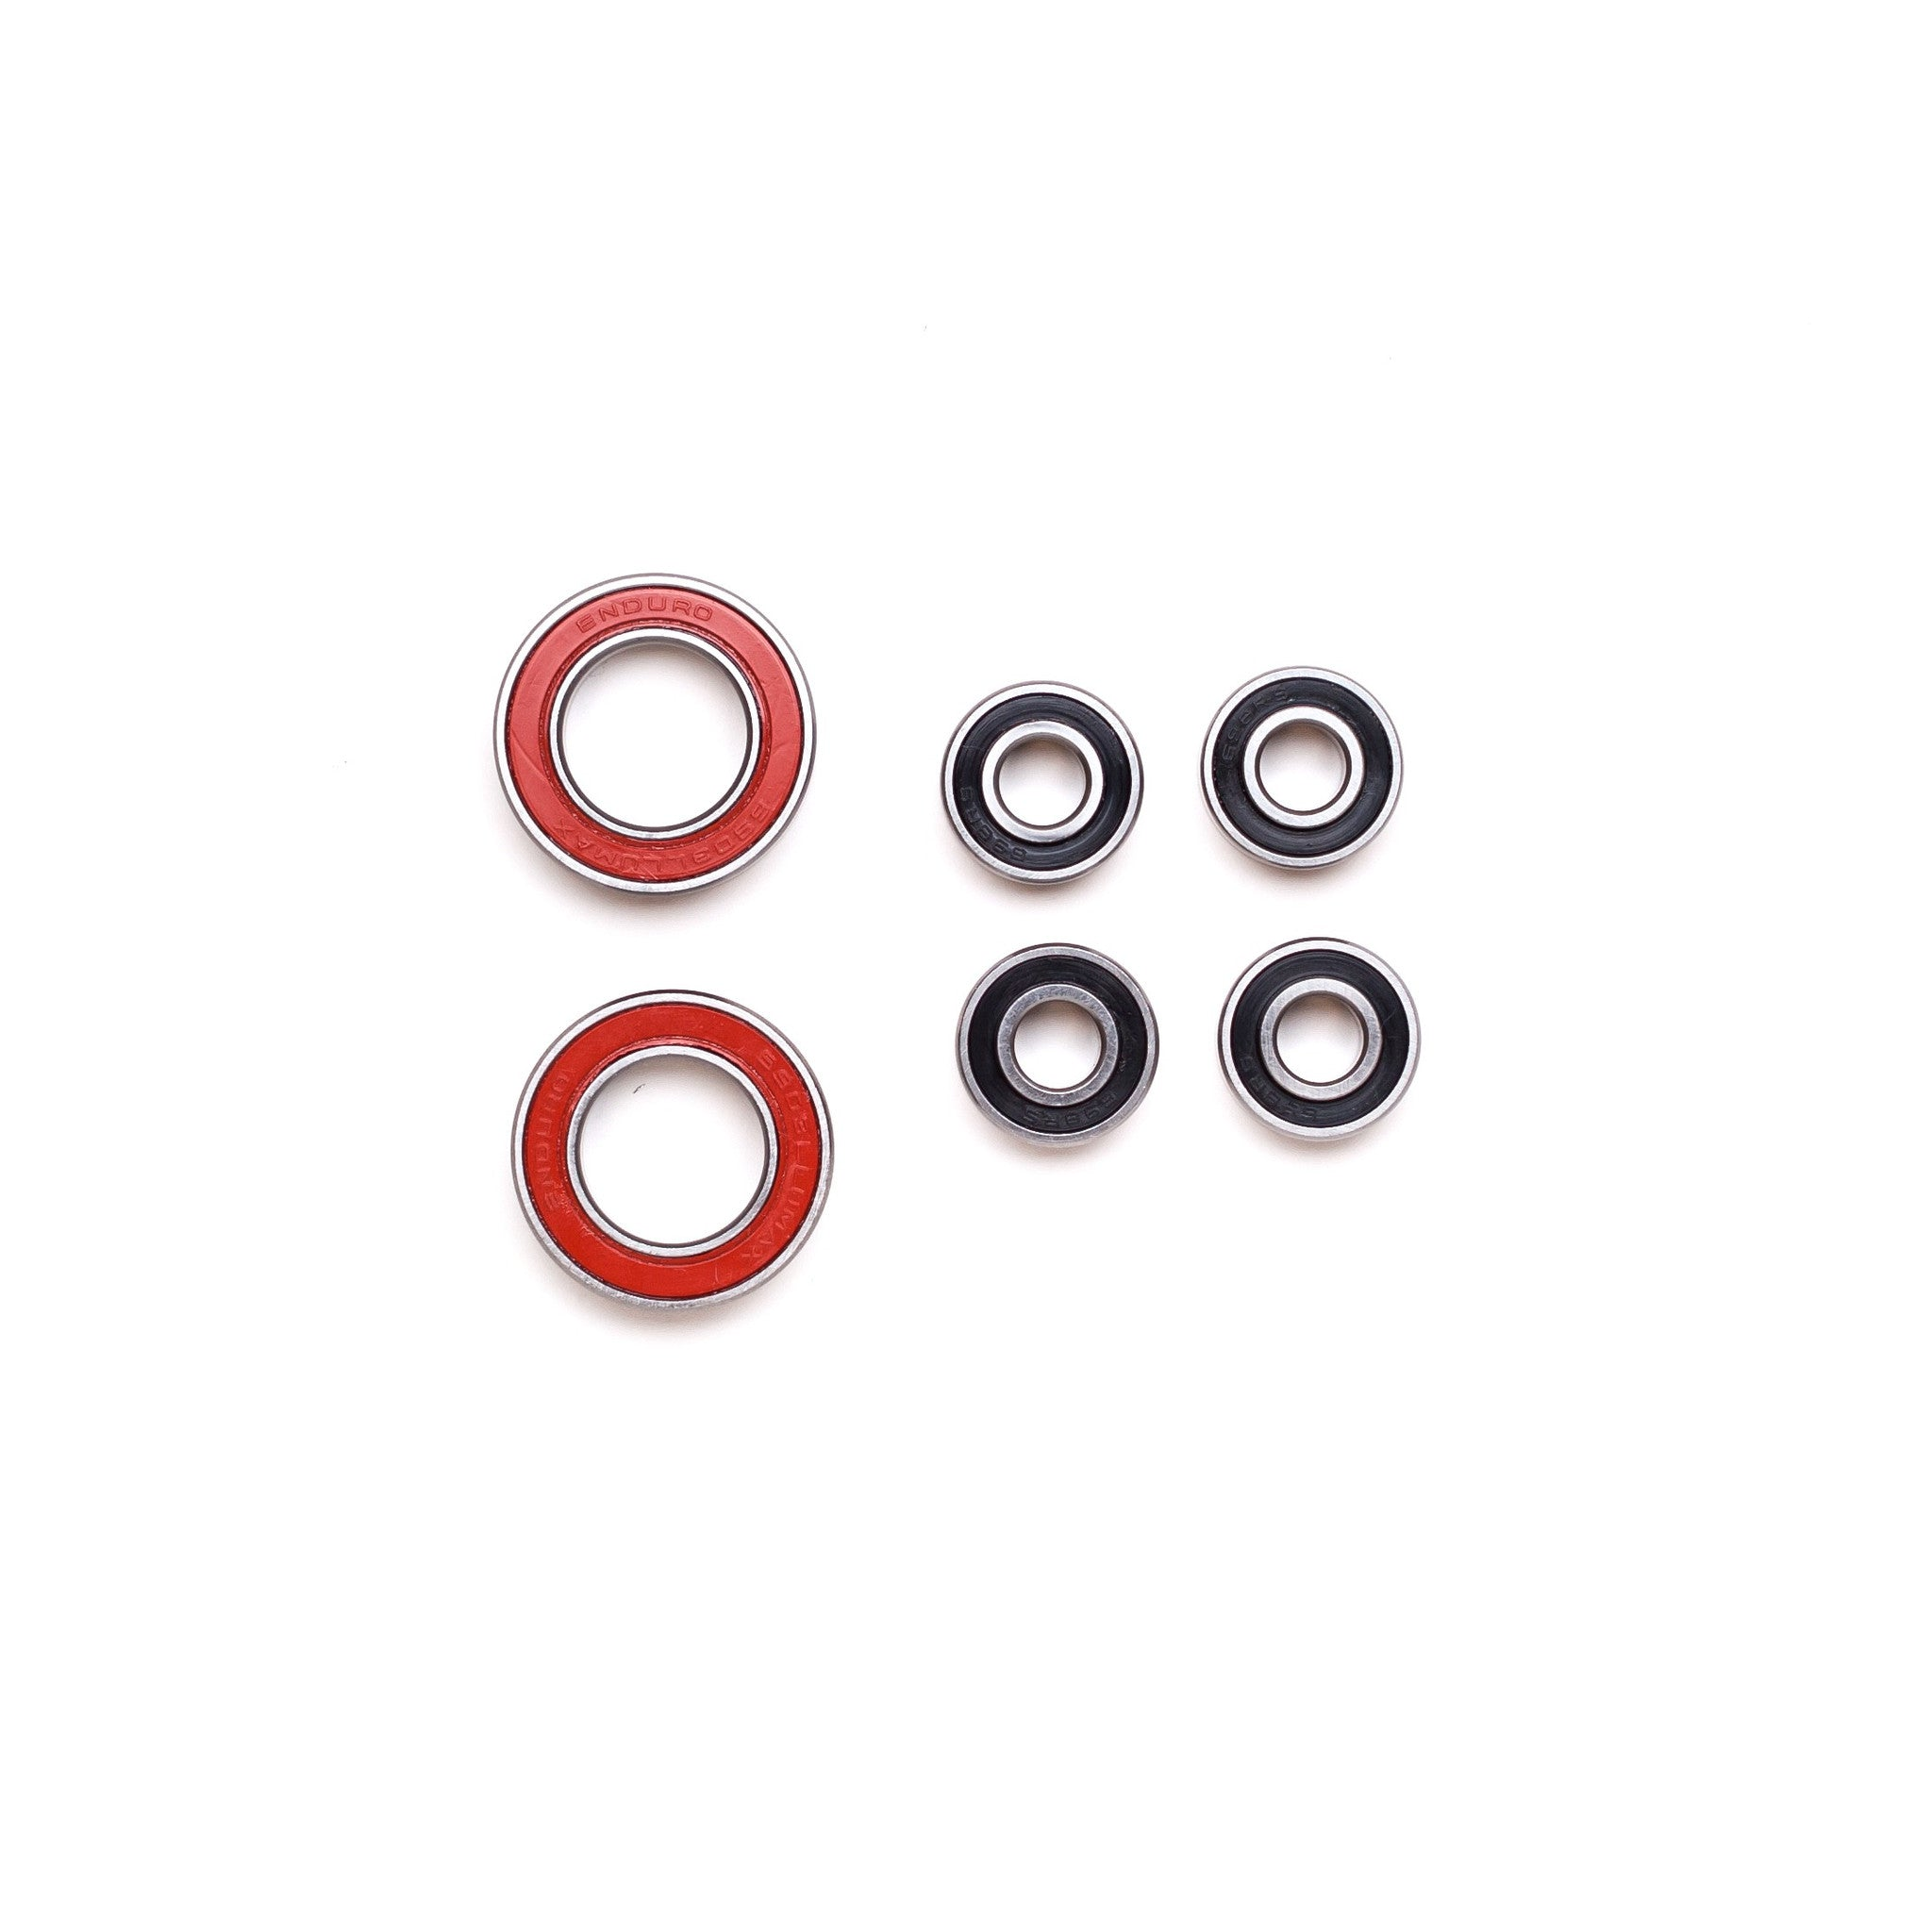 ASR-5 ALLOY/CARBON BEARING REBUILD KIT